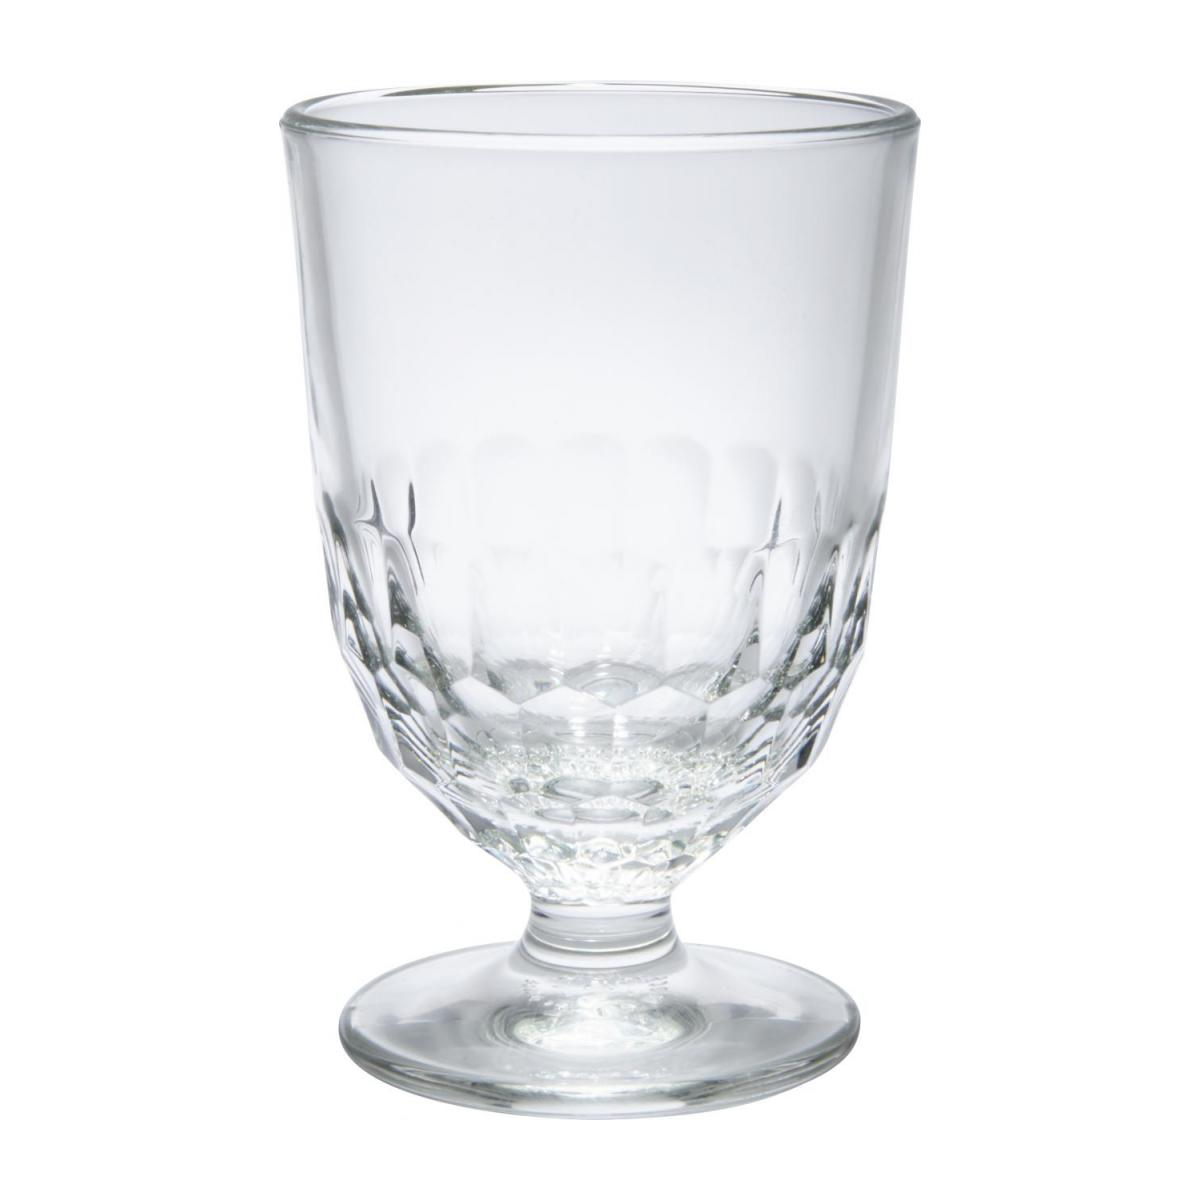 High stemmed glass n°1